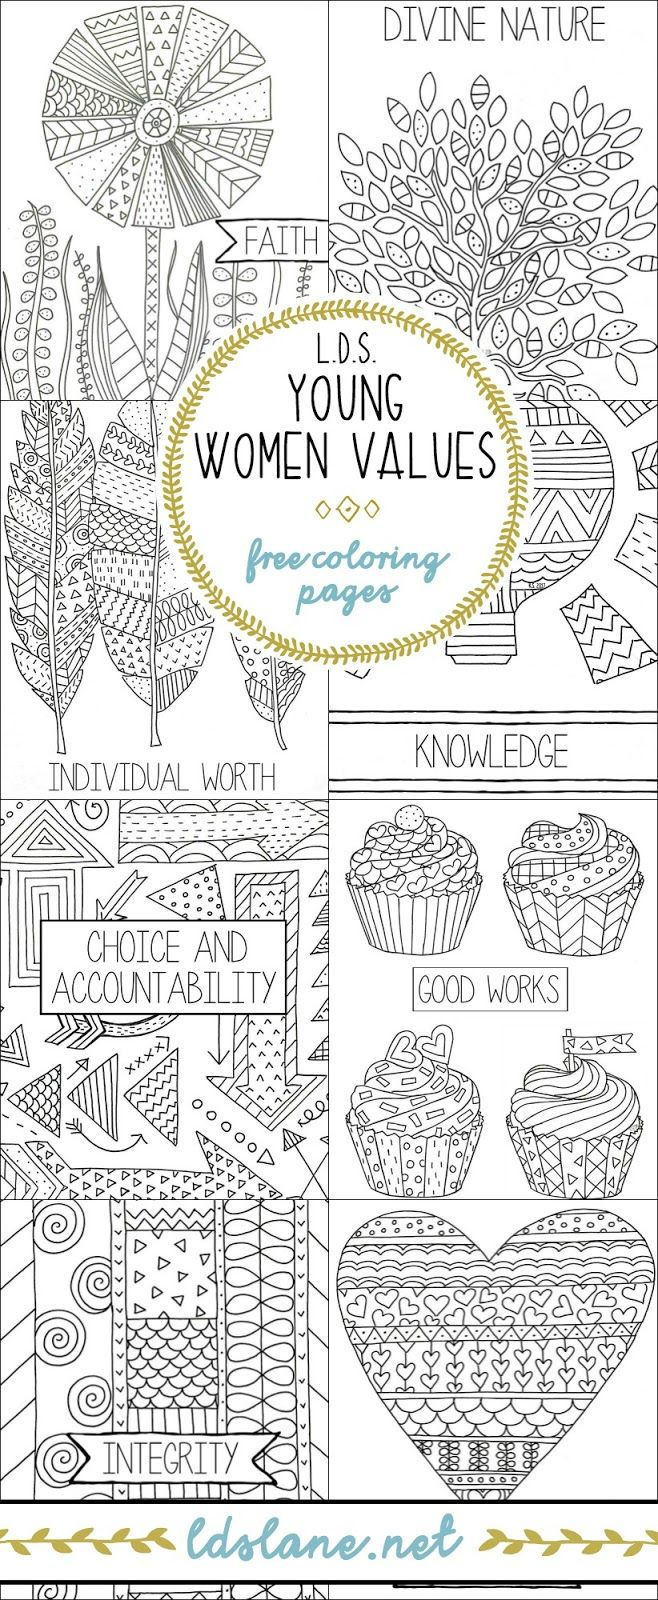 LDS Young Women Values Coloring Pages - ldslane.net | Church ...